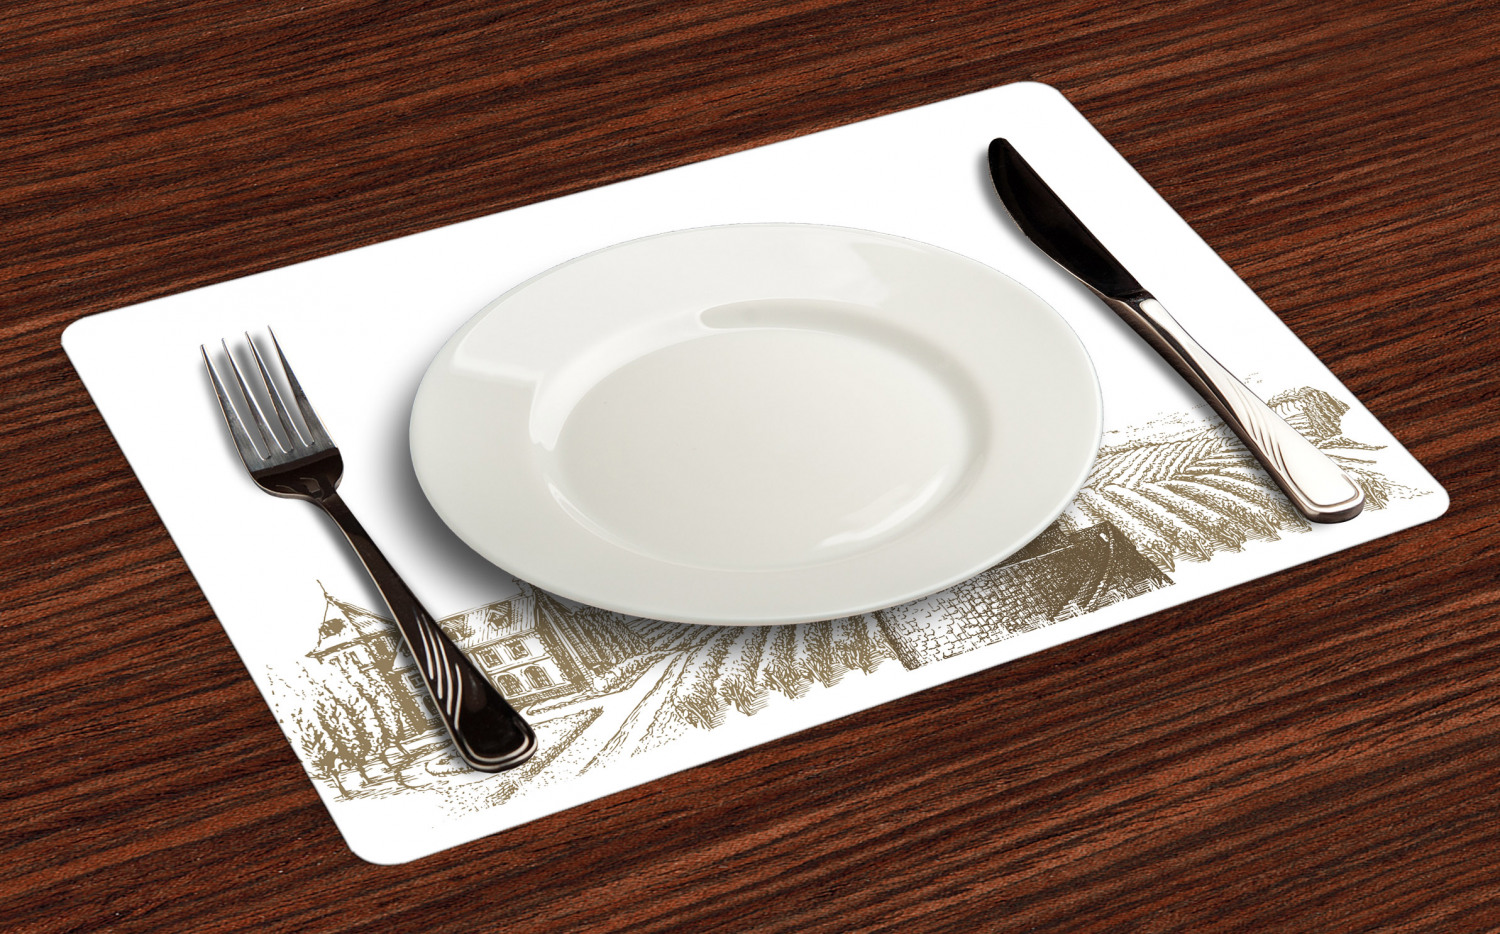 Ambesonne-Fabric-Place-Mats-Set-of-4-Placemats-for-Dining-Room-and-Kitchen-Table thumbnail 161